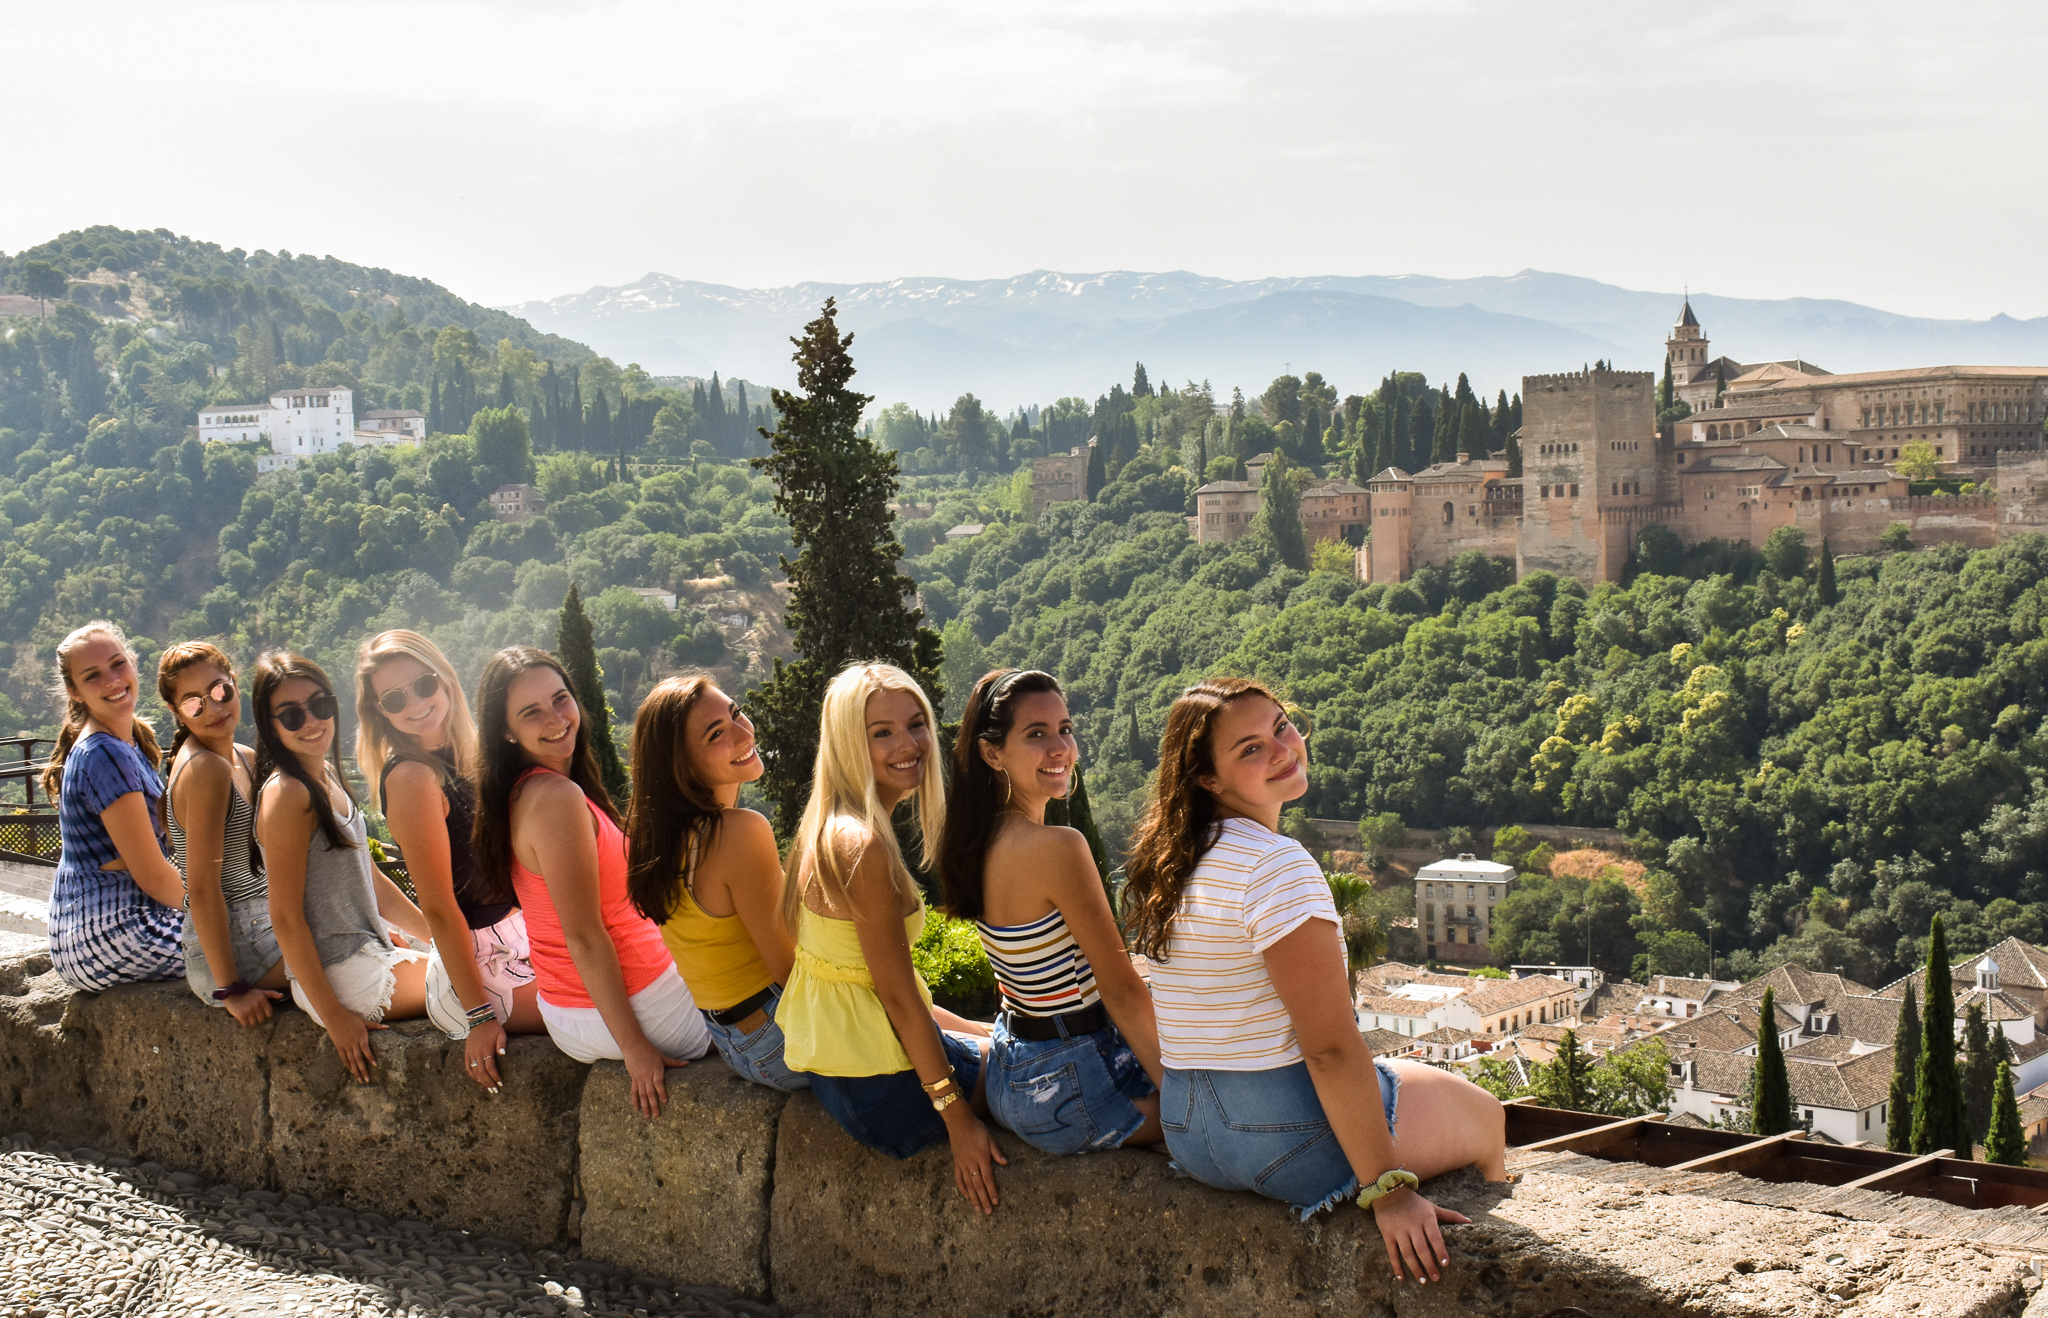 Summer Program - Adventure/Trips | Travel For Teens: Europe for Older Teens - Spain and Portugal